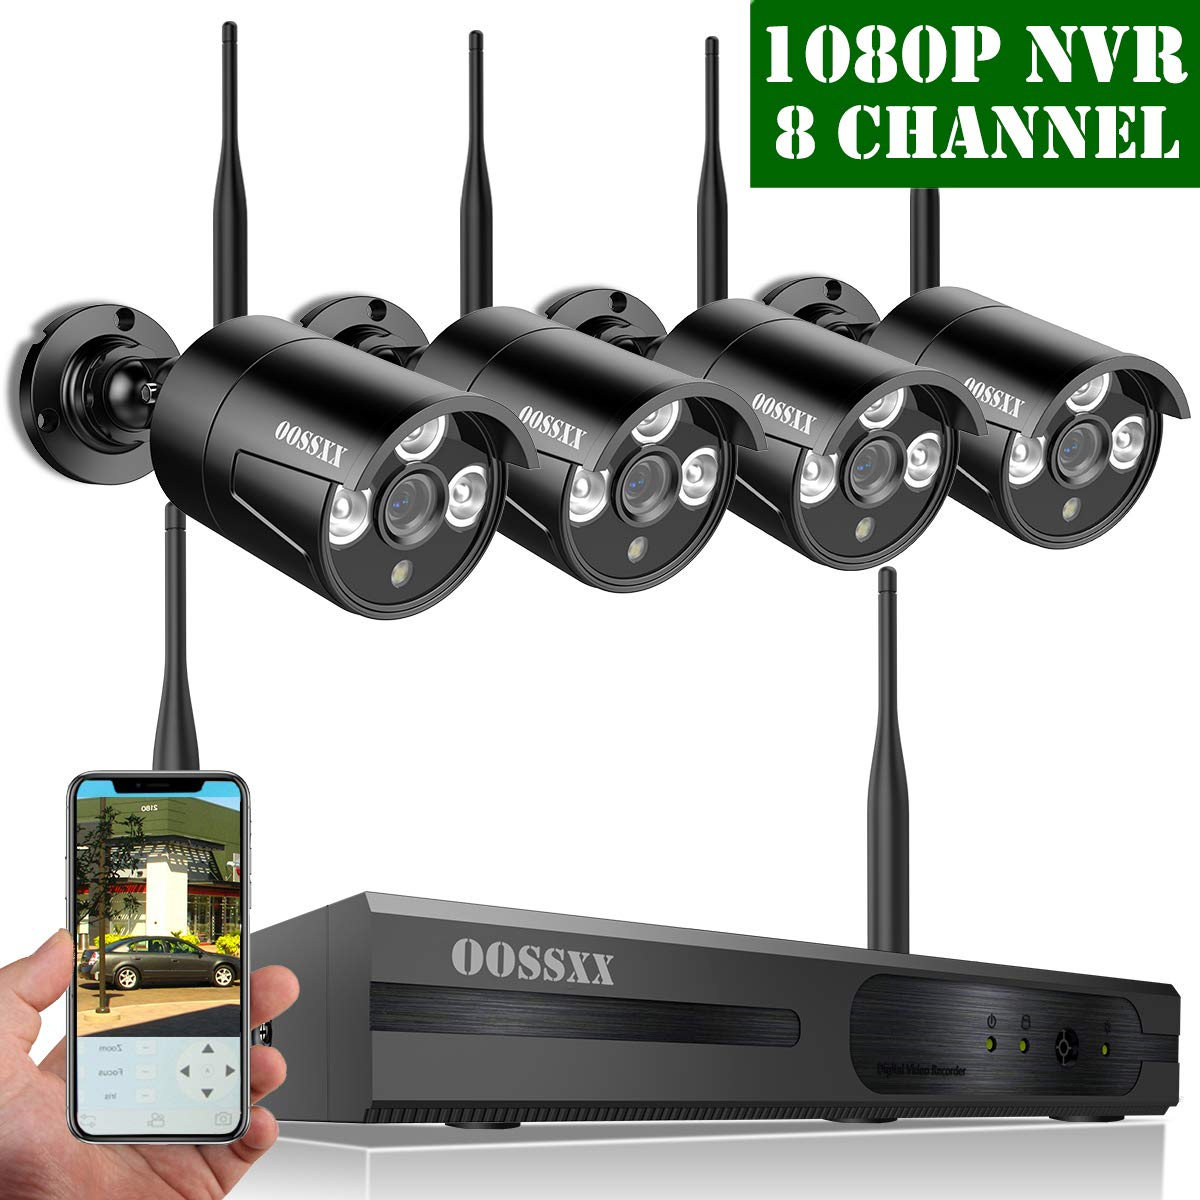 Best Security Cameras For Home Outdoor 2020.2020 Update Oossxx Hd 1080p 8 Channel Wireless Security Camera System 4 Pcs 720p 1 0 Megapixel Wireless Weatherproof Bullet Ip Cameras Plug